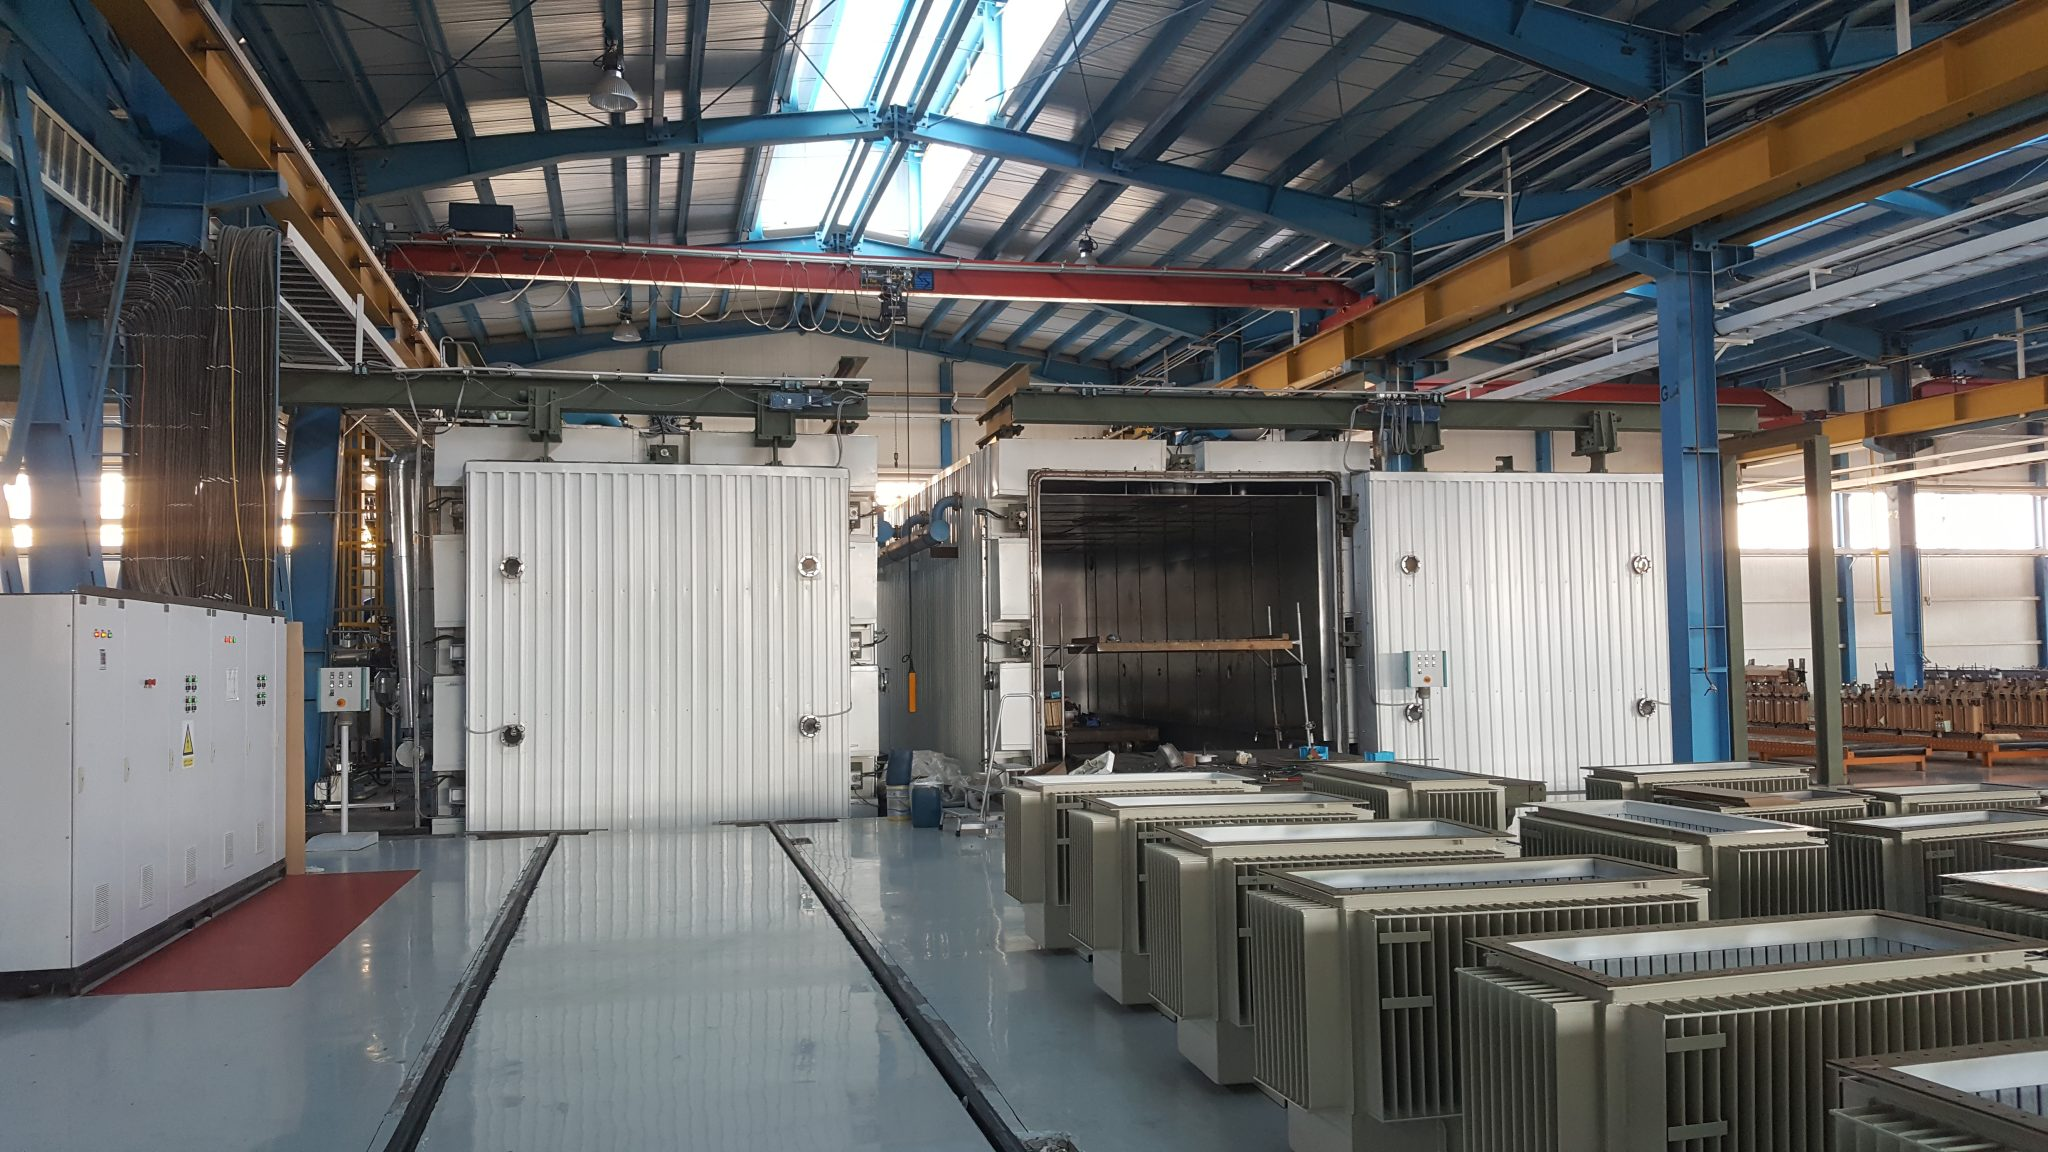 Transformer insulation drying oven 2